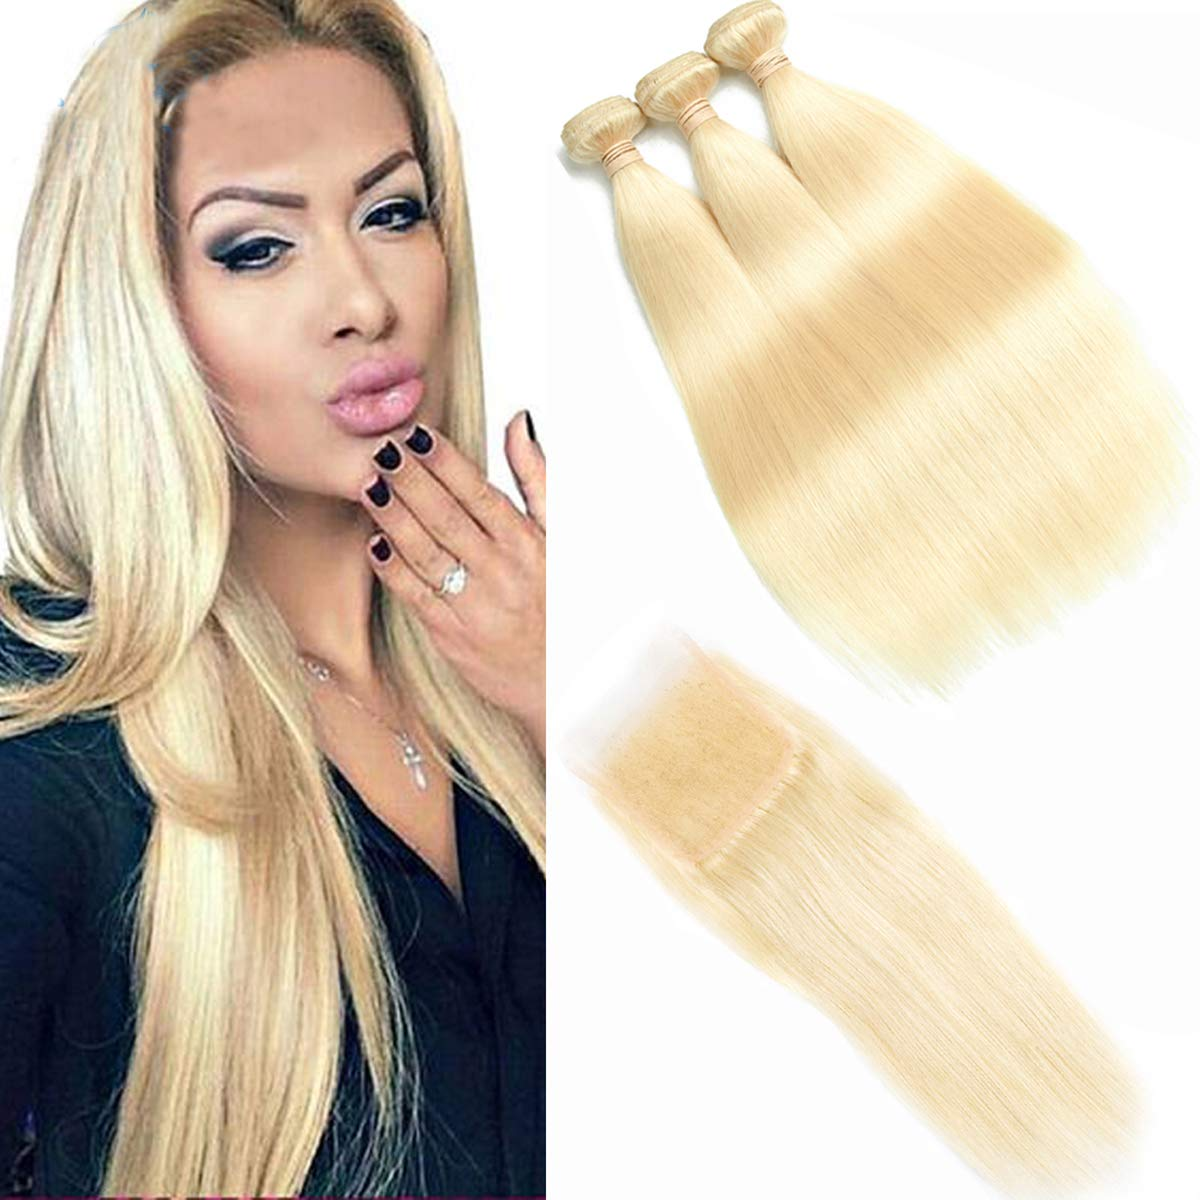 Beauhair 613 Blonde Virgin Hair Bundles with Rapid rise 4x4 Lowest price challenge Lace 3